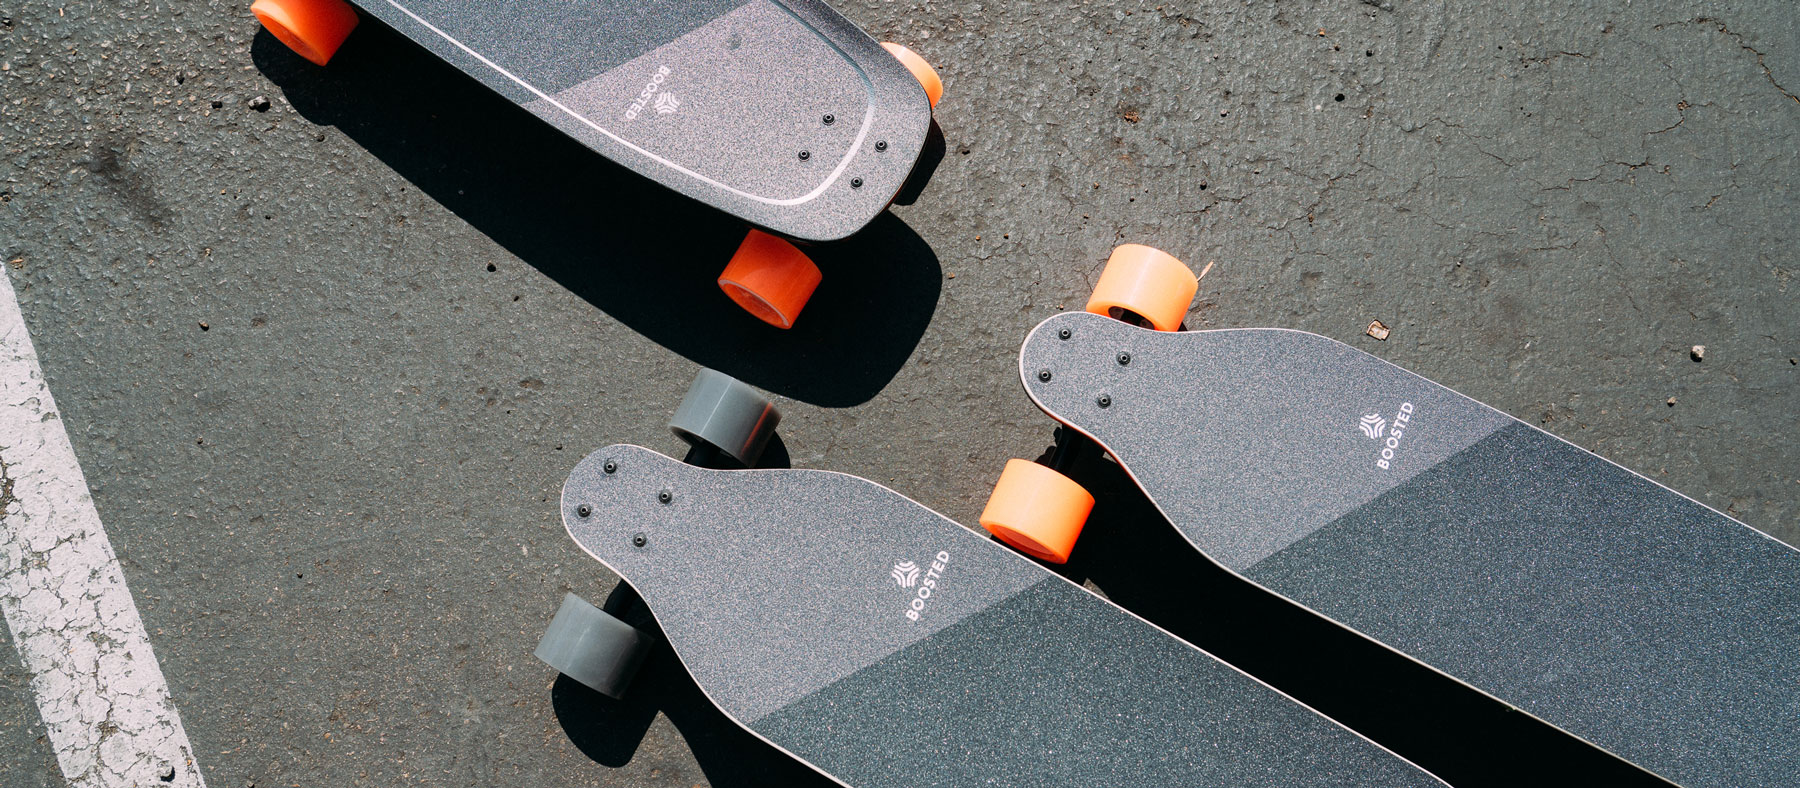 10 Best Electric Skateboards in 2020 – Buyer's Guide